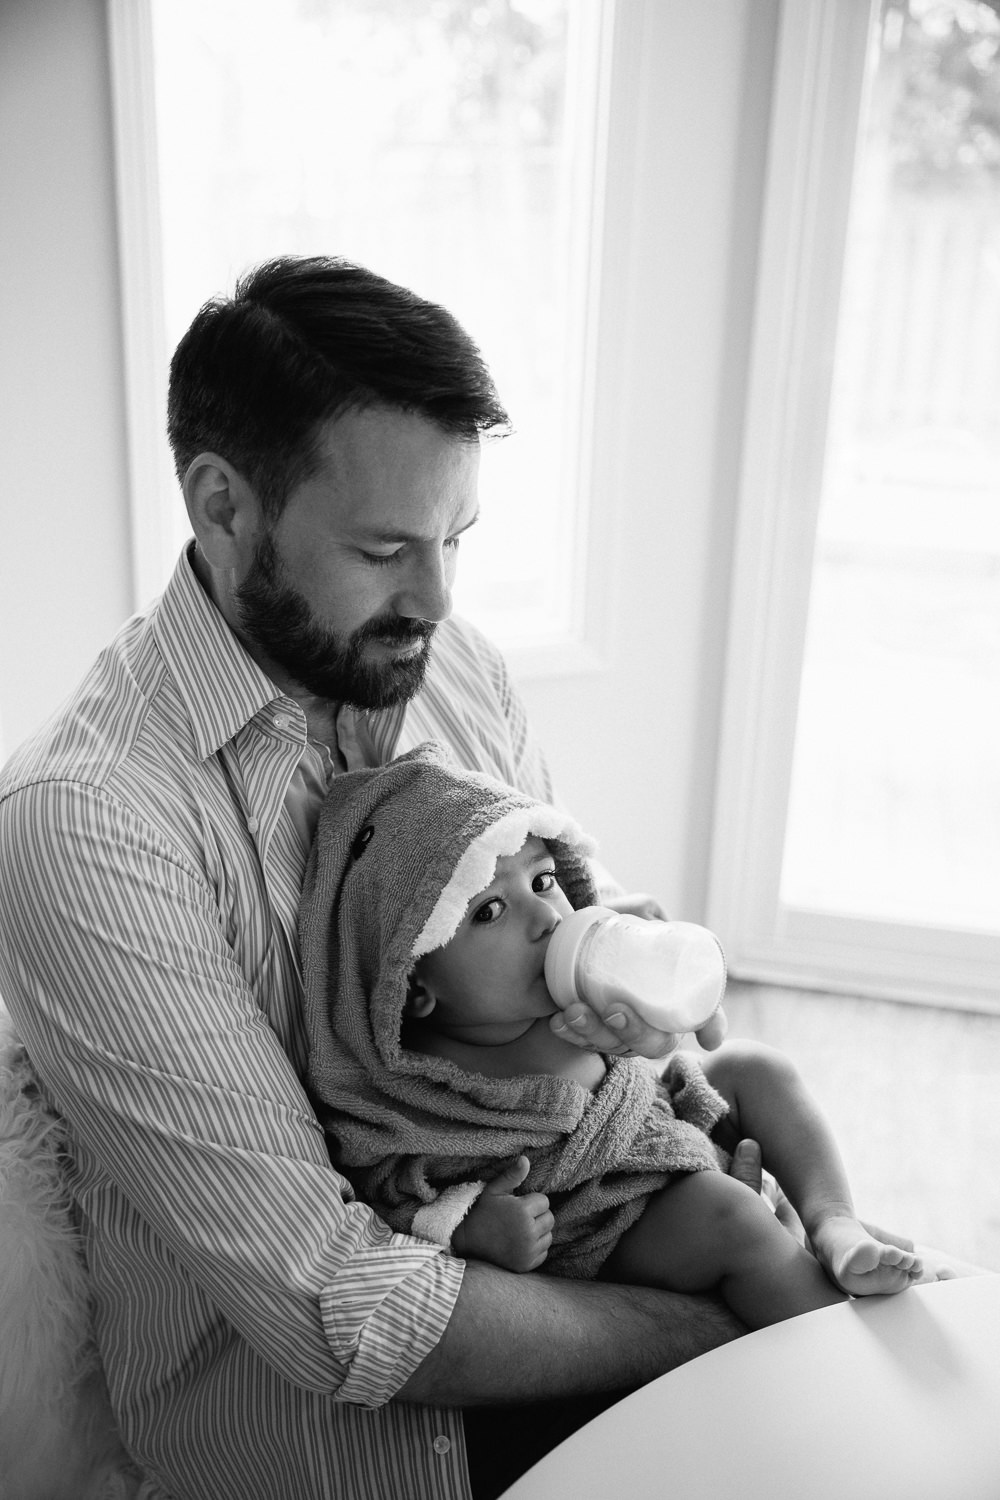 dad sitting at kitchen table holding 1 year old baby boy in hooded towel in his lap and feeding him bottle - Markham In-Home Photos